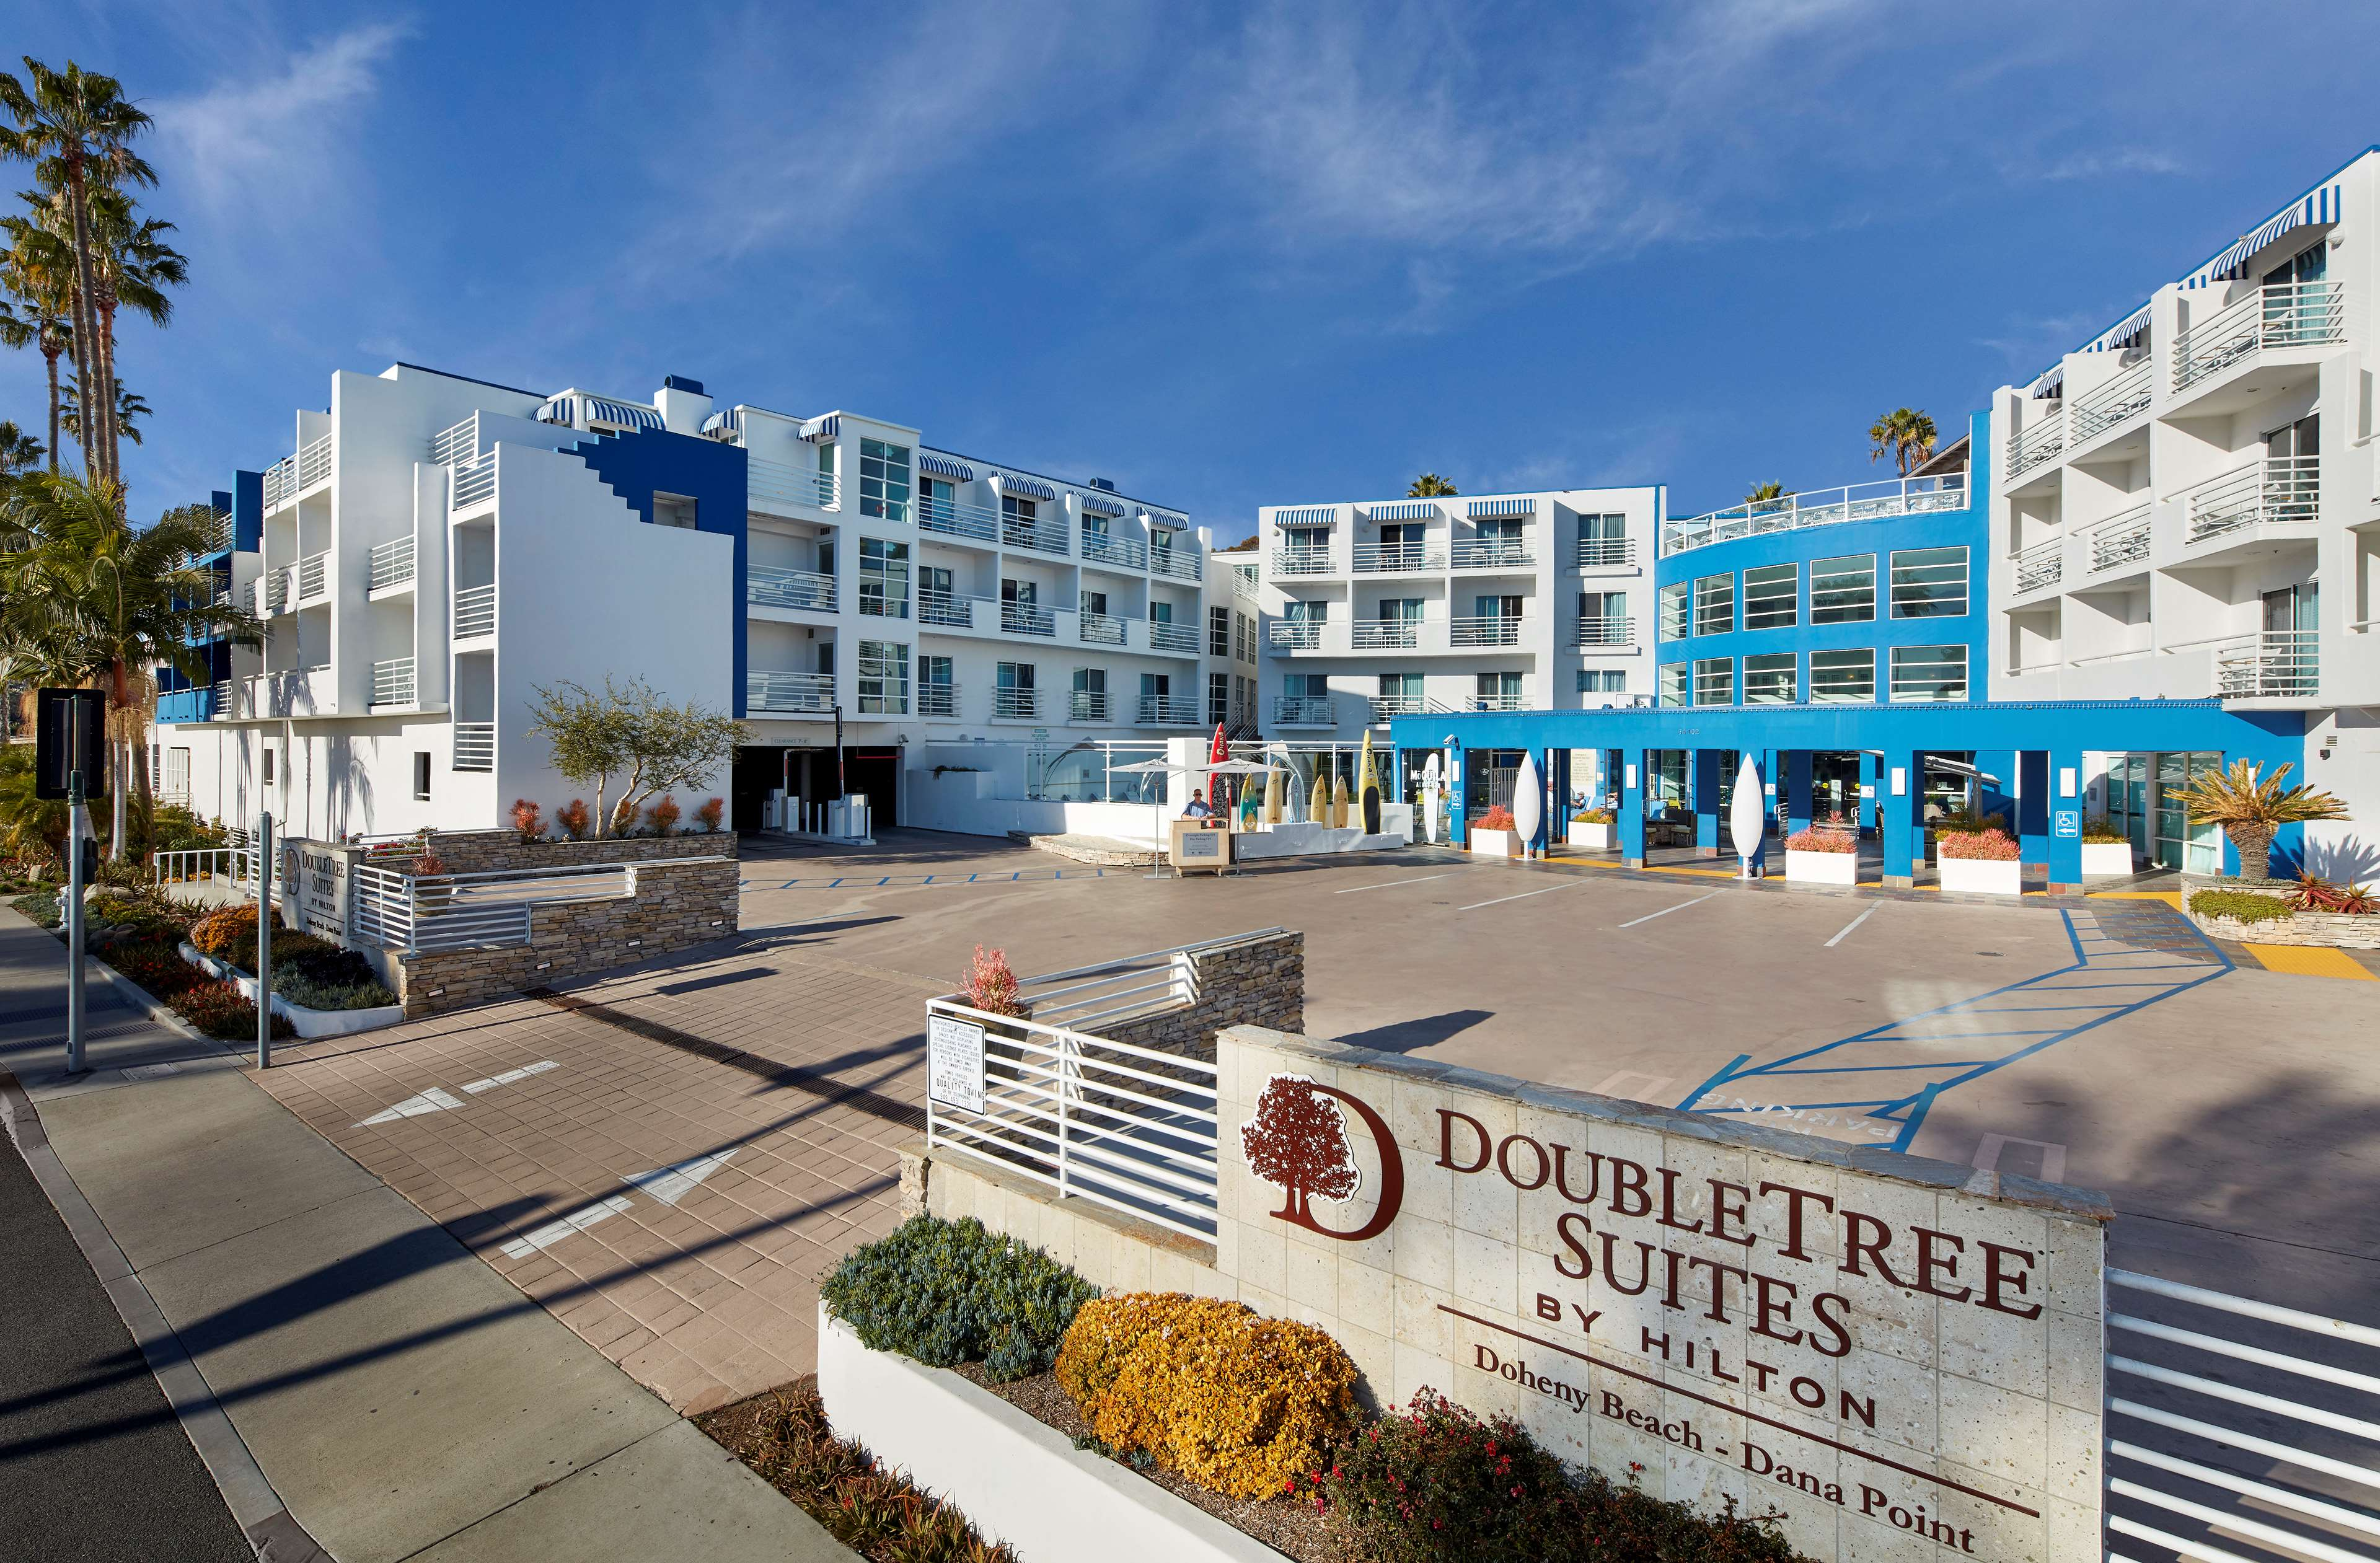 DoubleTree Suites by Hilton Hotel Doheny Beach - Dana Point image 0